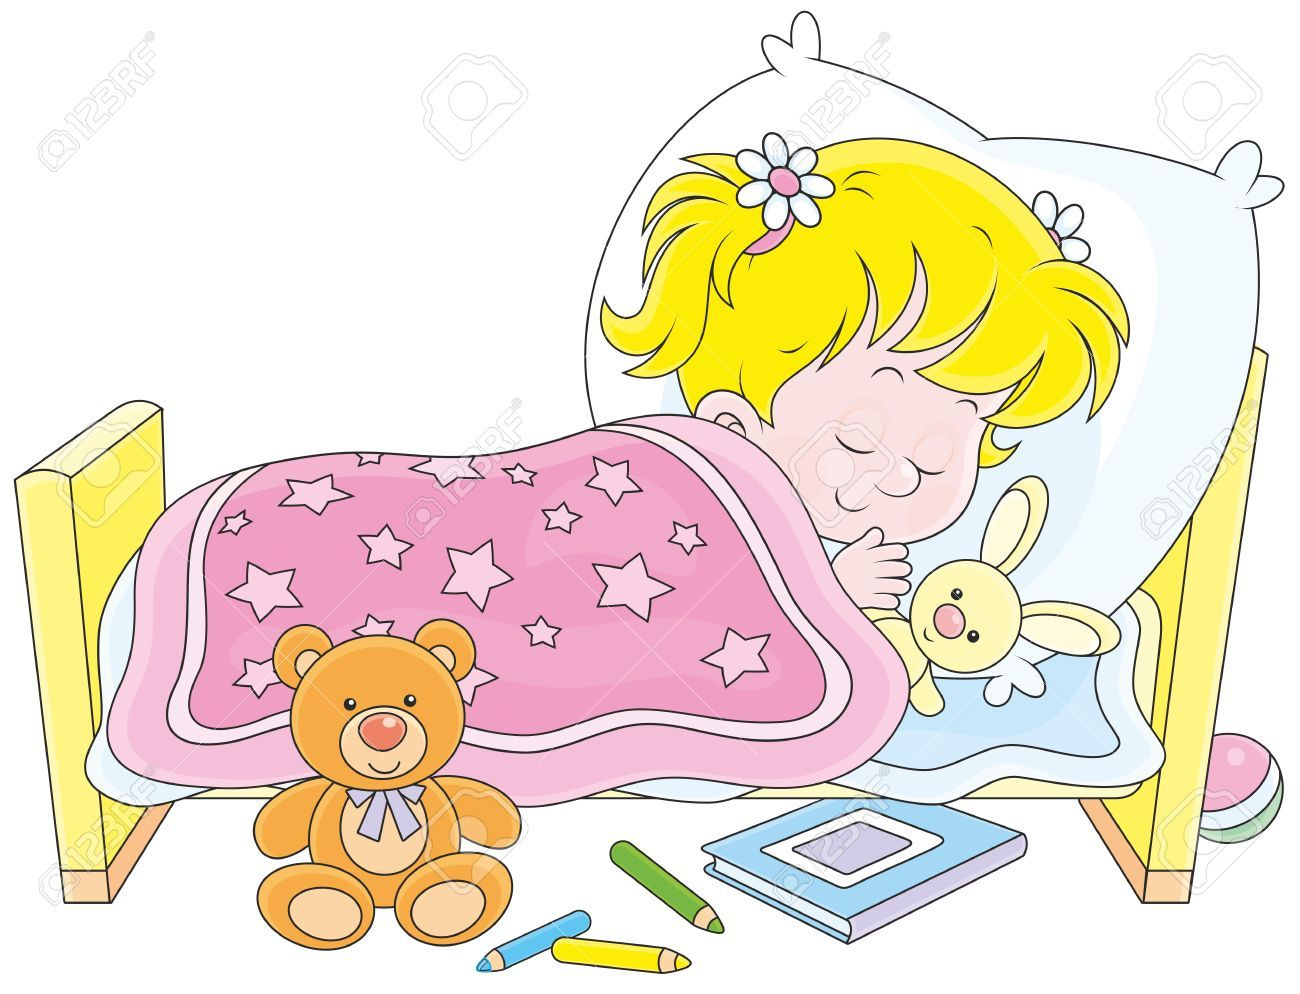 Girl sleeping in bed clipart 1 » Clipart Portal.